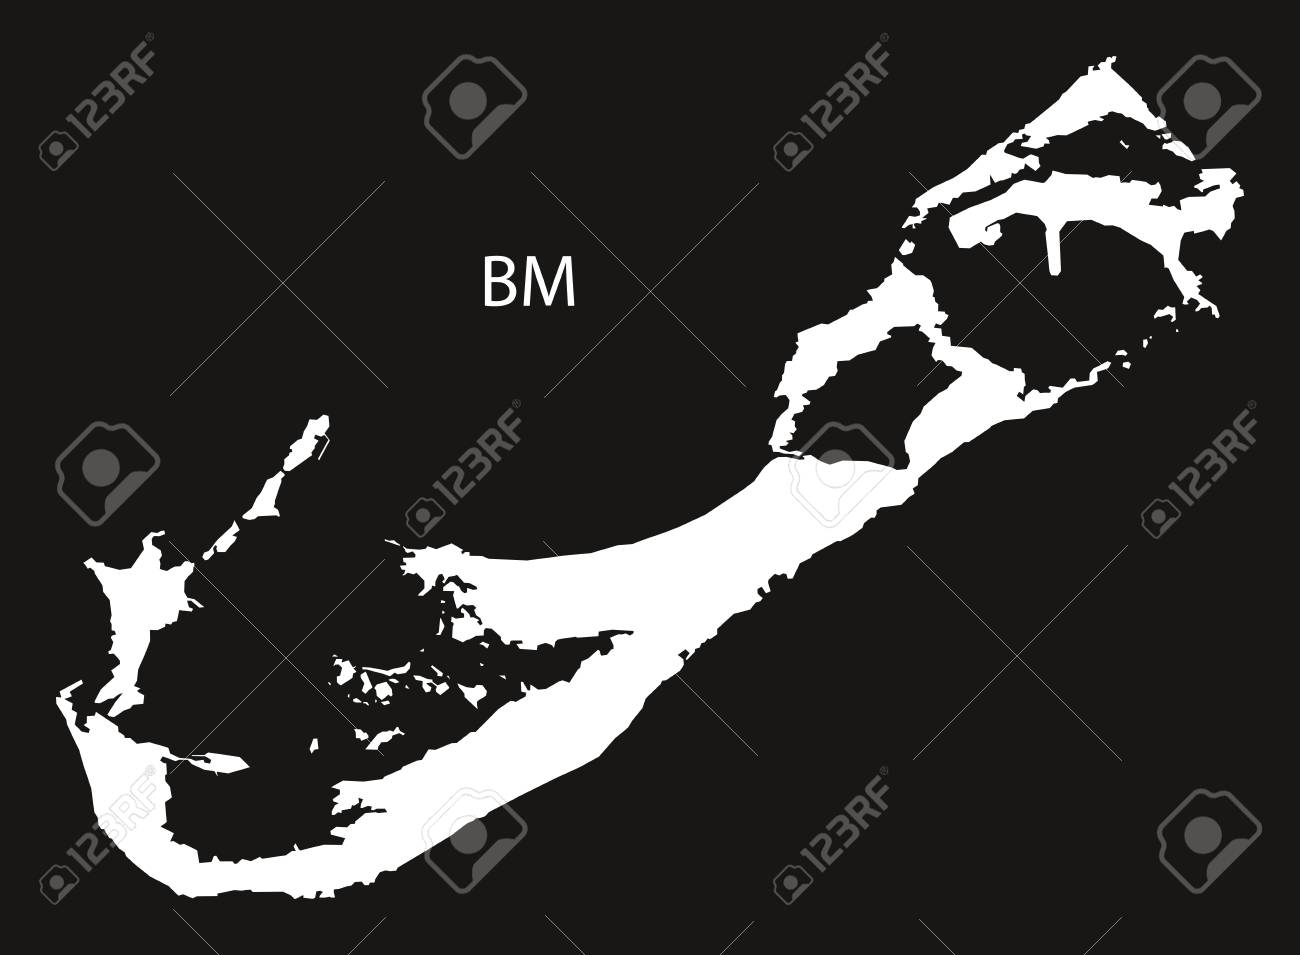 Bermuda Map black and white illustration